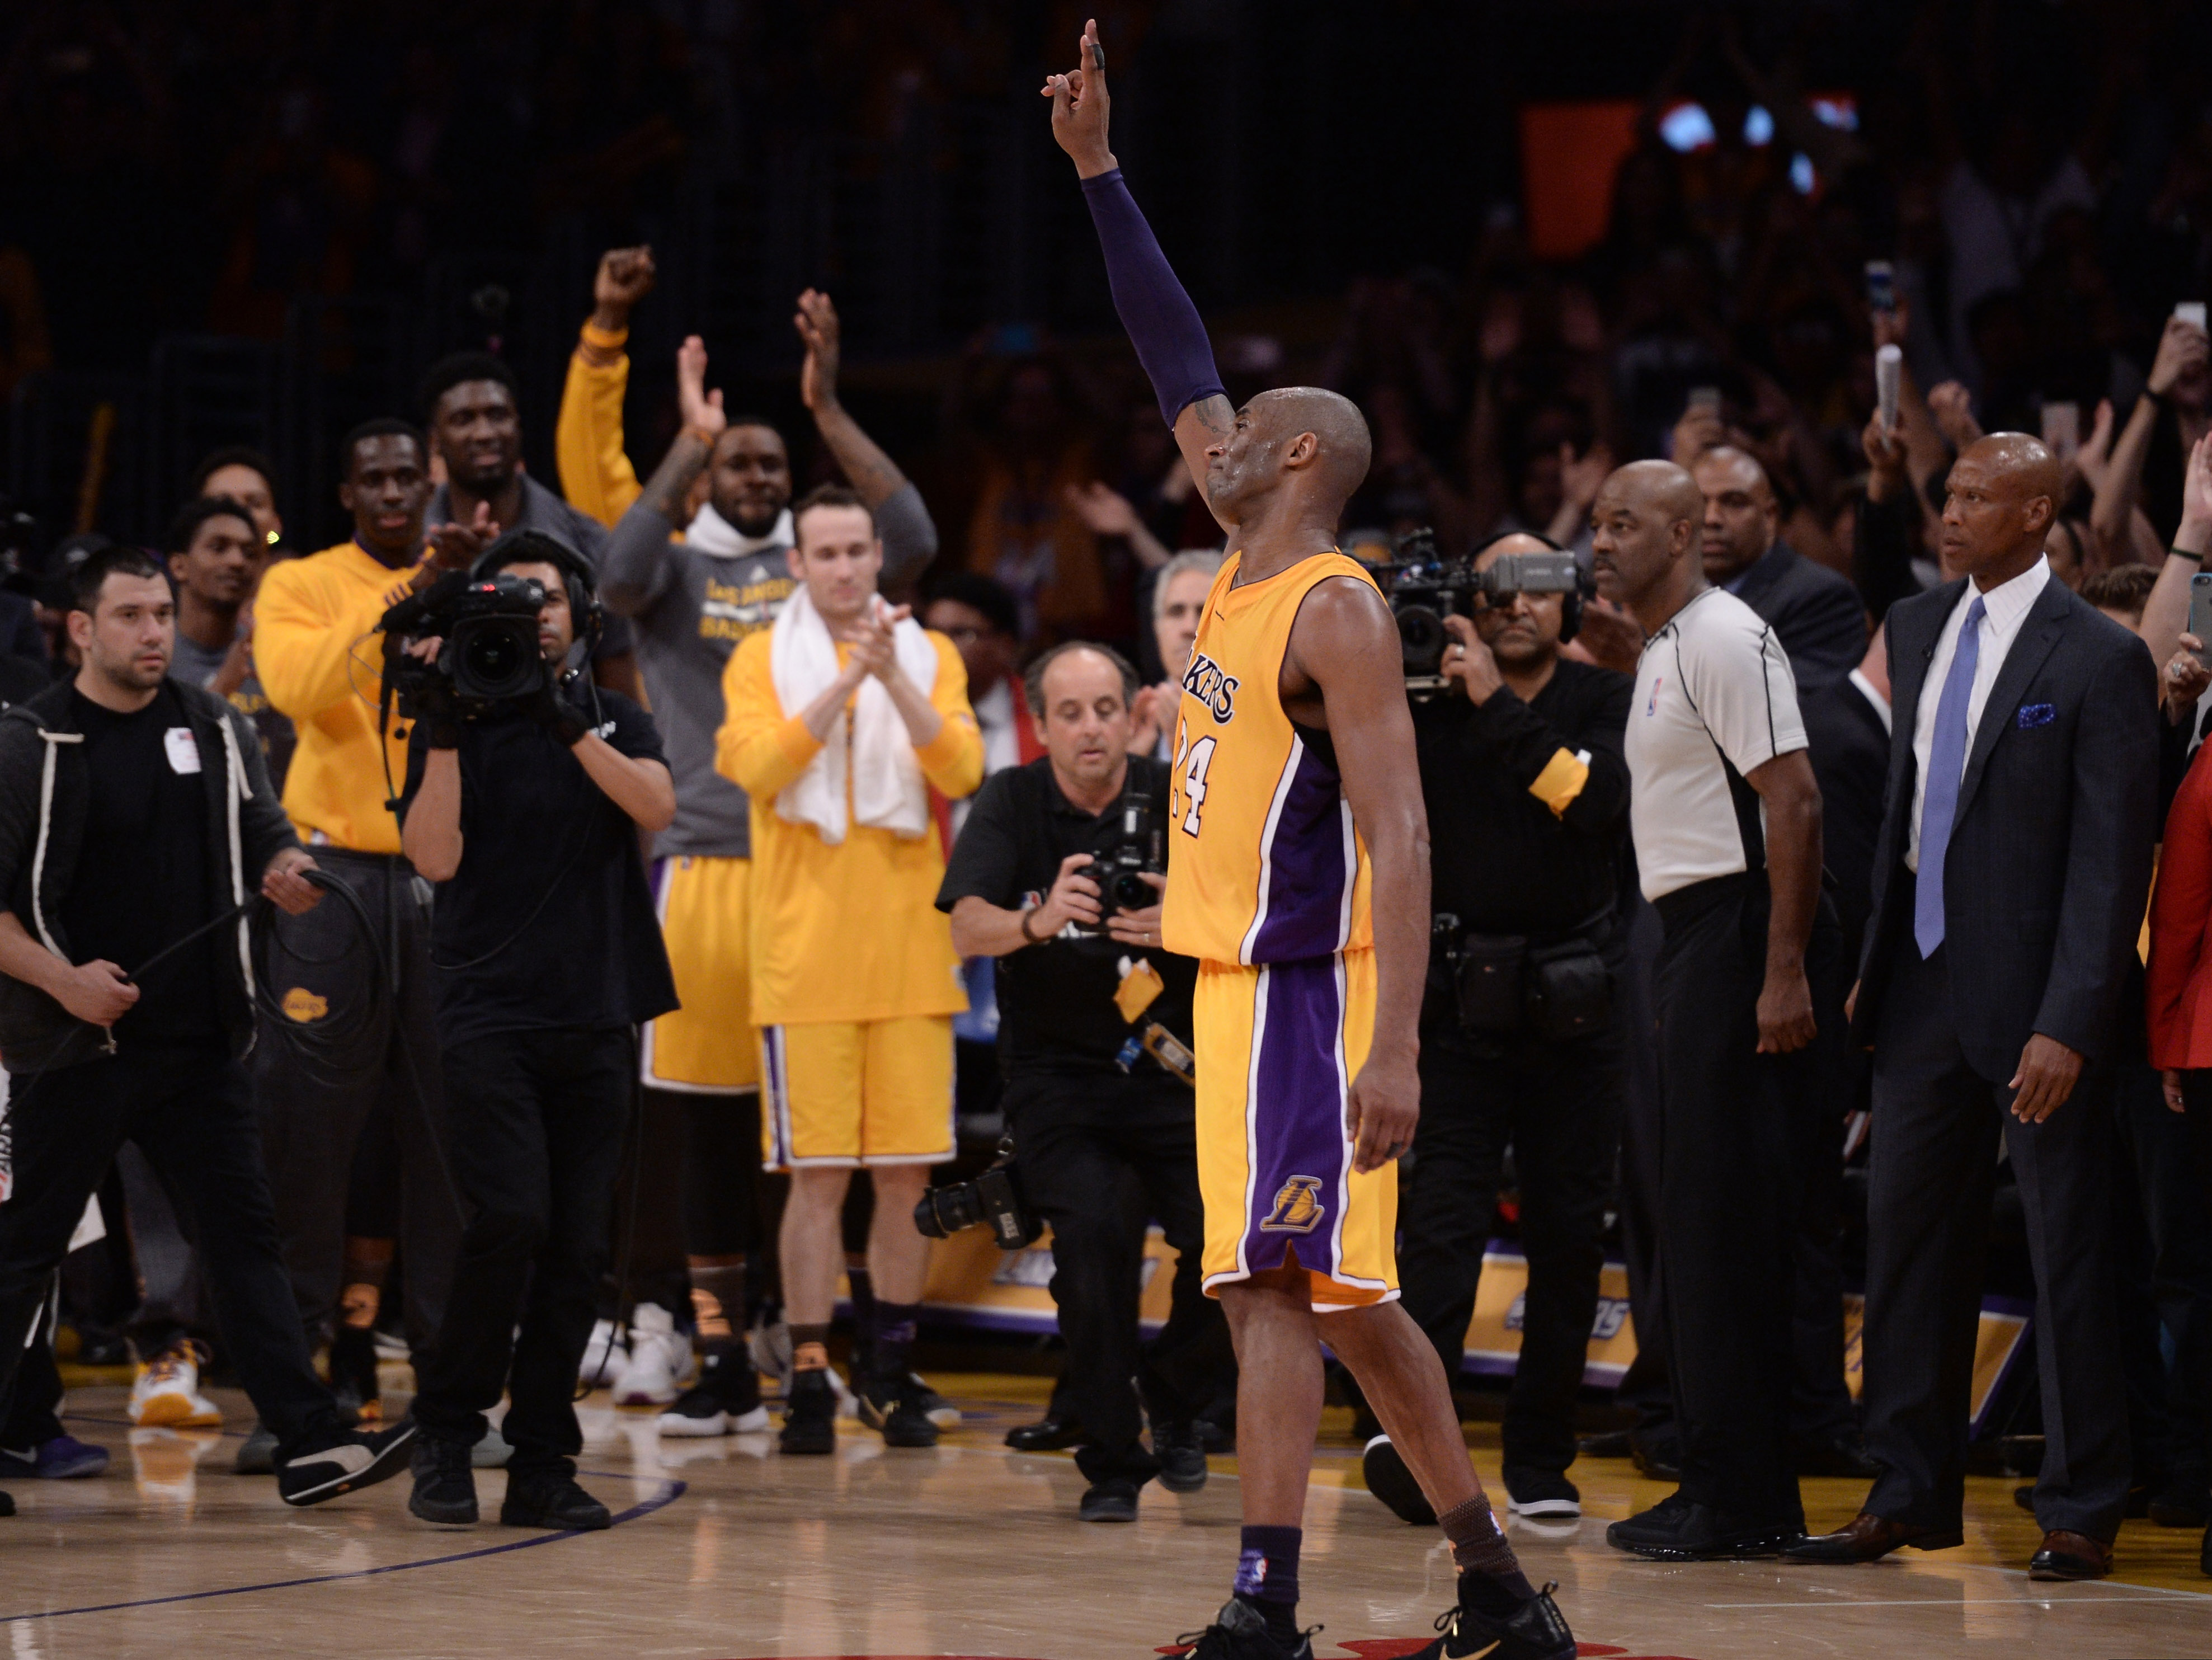 Apr 13, 2016; Los Angeles, CA, USA; Los Angeles Lakers forward Kobe Bryant (24) waves to the Staples Center crowd as he leaves the game against the Utah Jazz in the closing seconds. Bryant scored 60 points in the final game of his career. Mandatory Credit: Robert Hanashiro-USA TODAY Sports - RTX29VHM